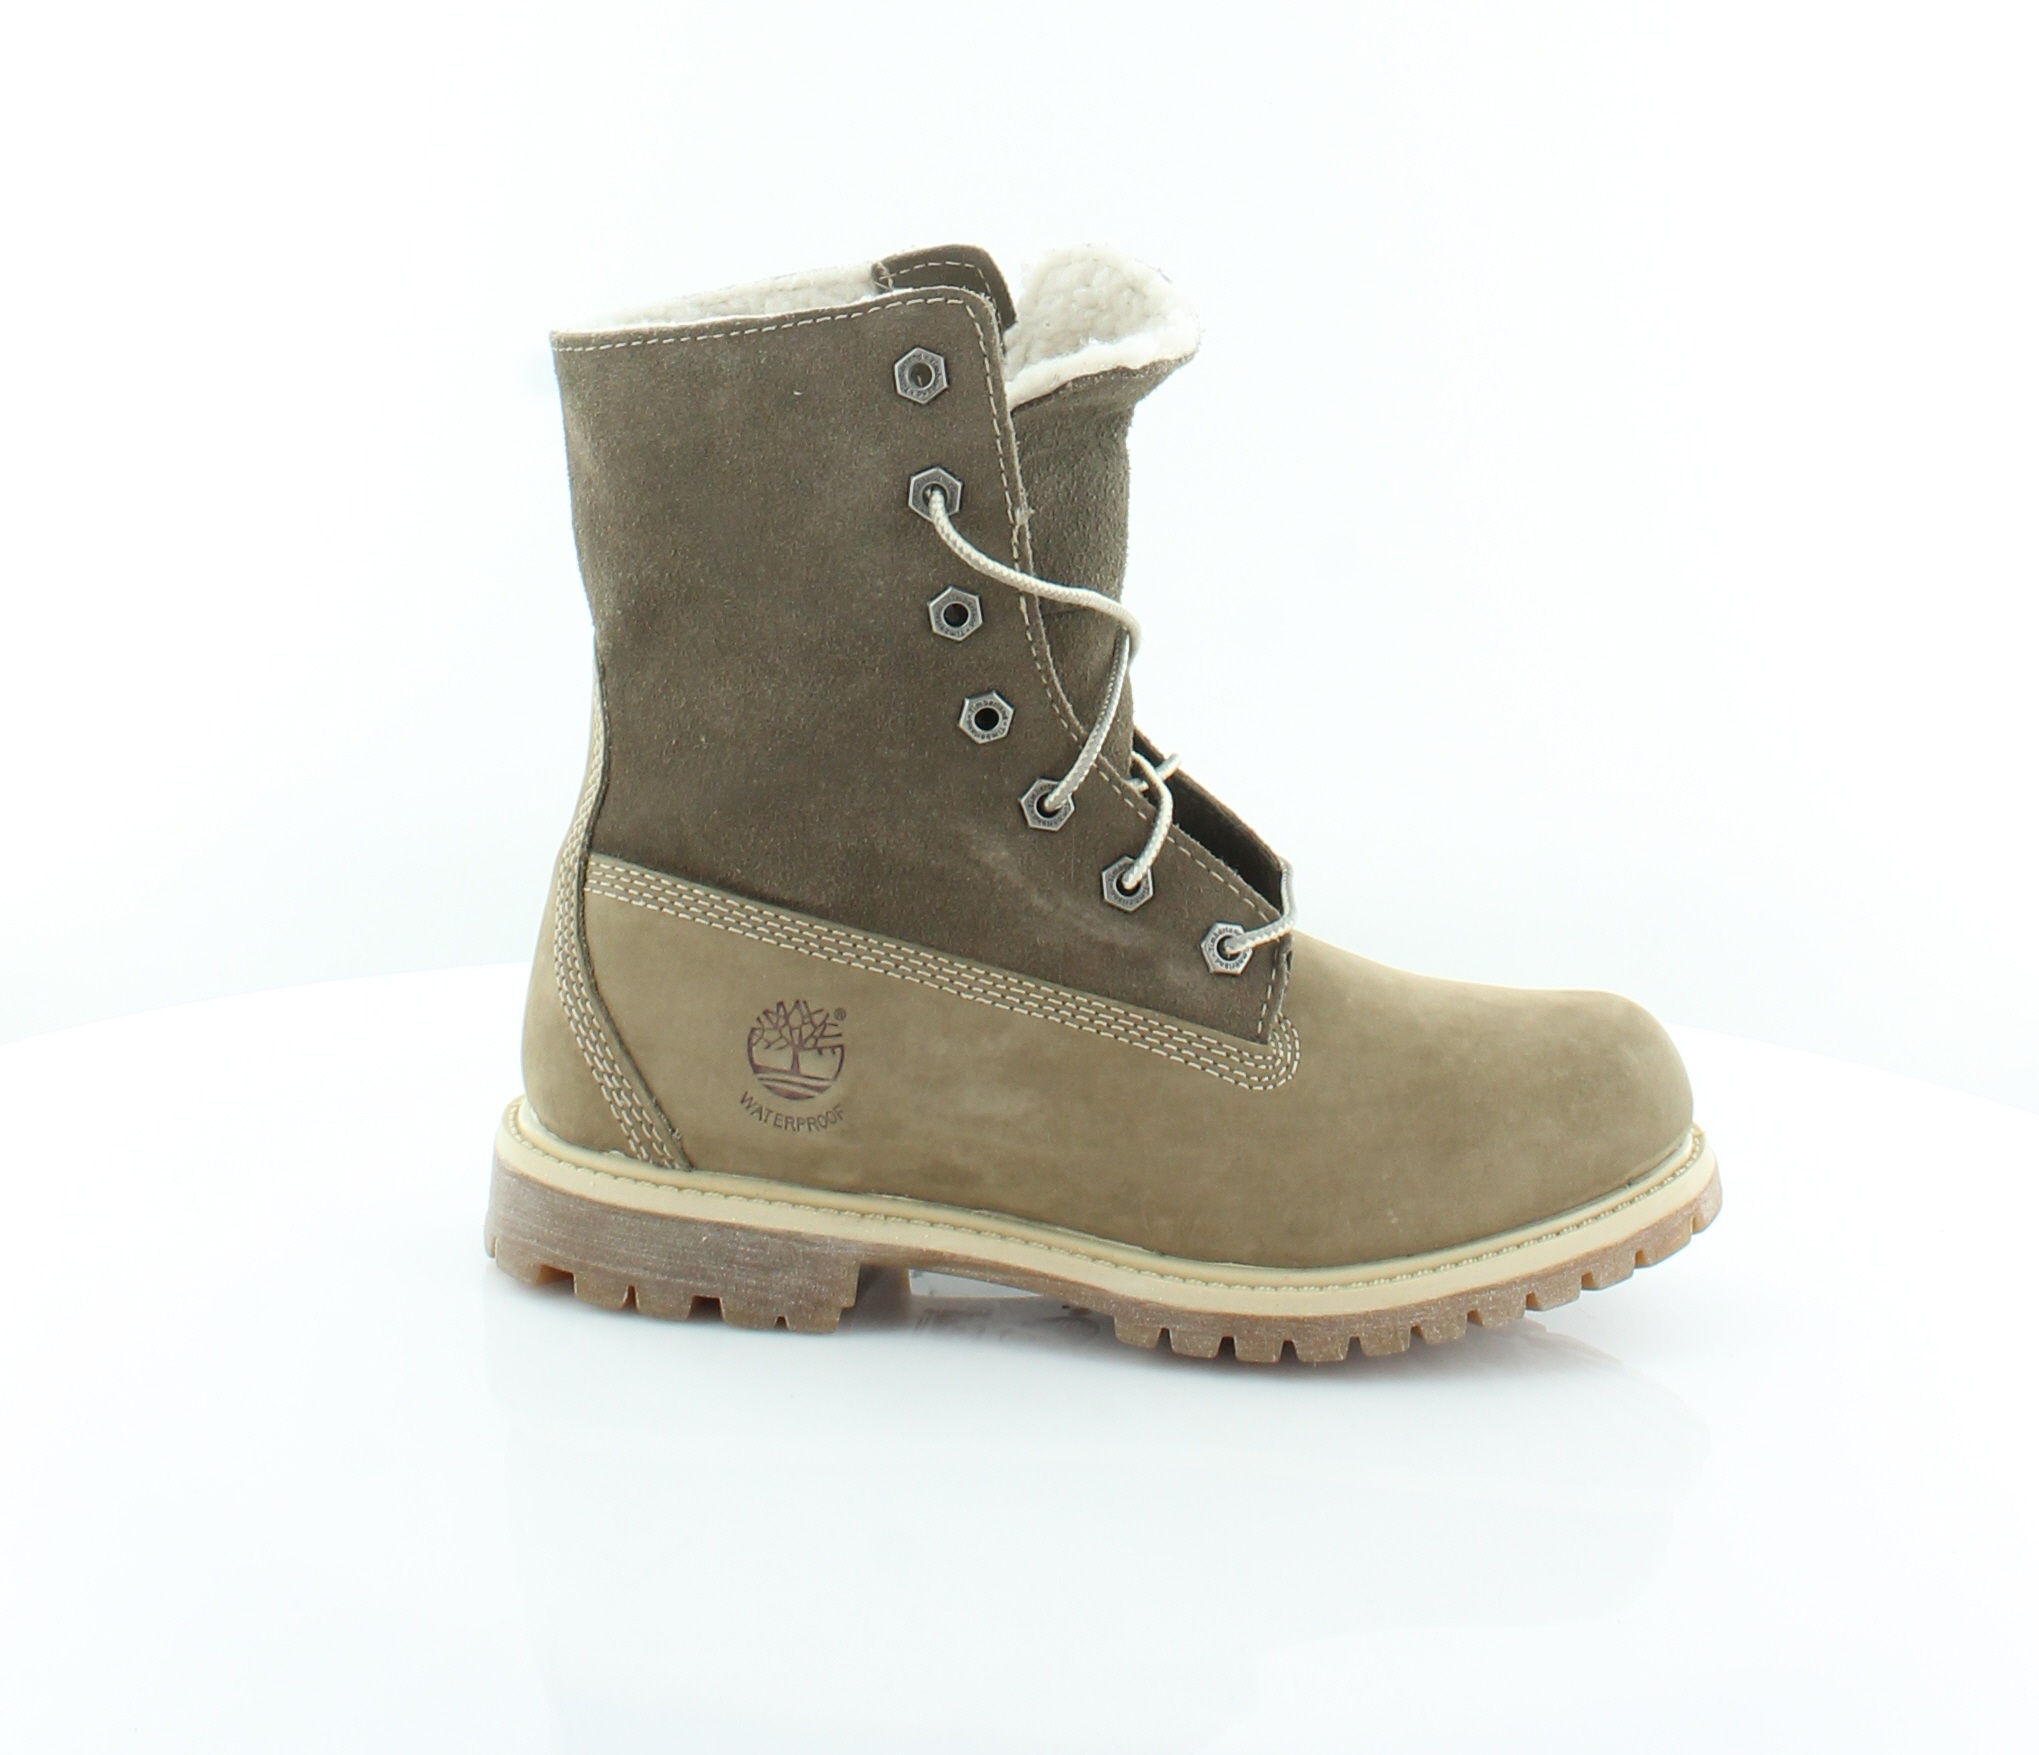 Timberland New Teddy Brown Womens Shoes Size 5.5 M Boots MSRP $165